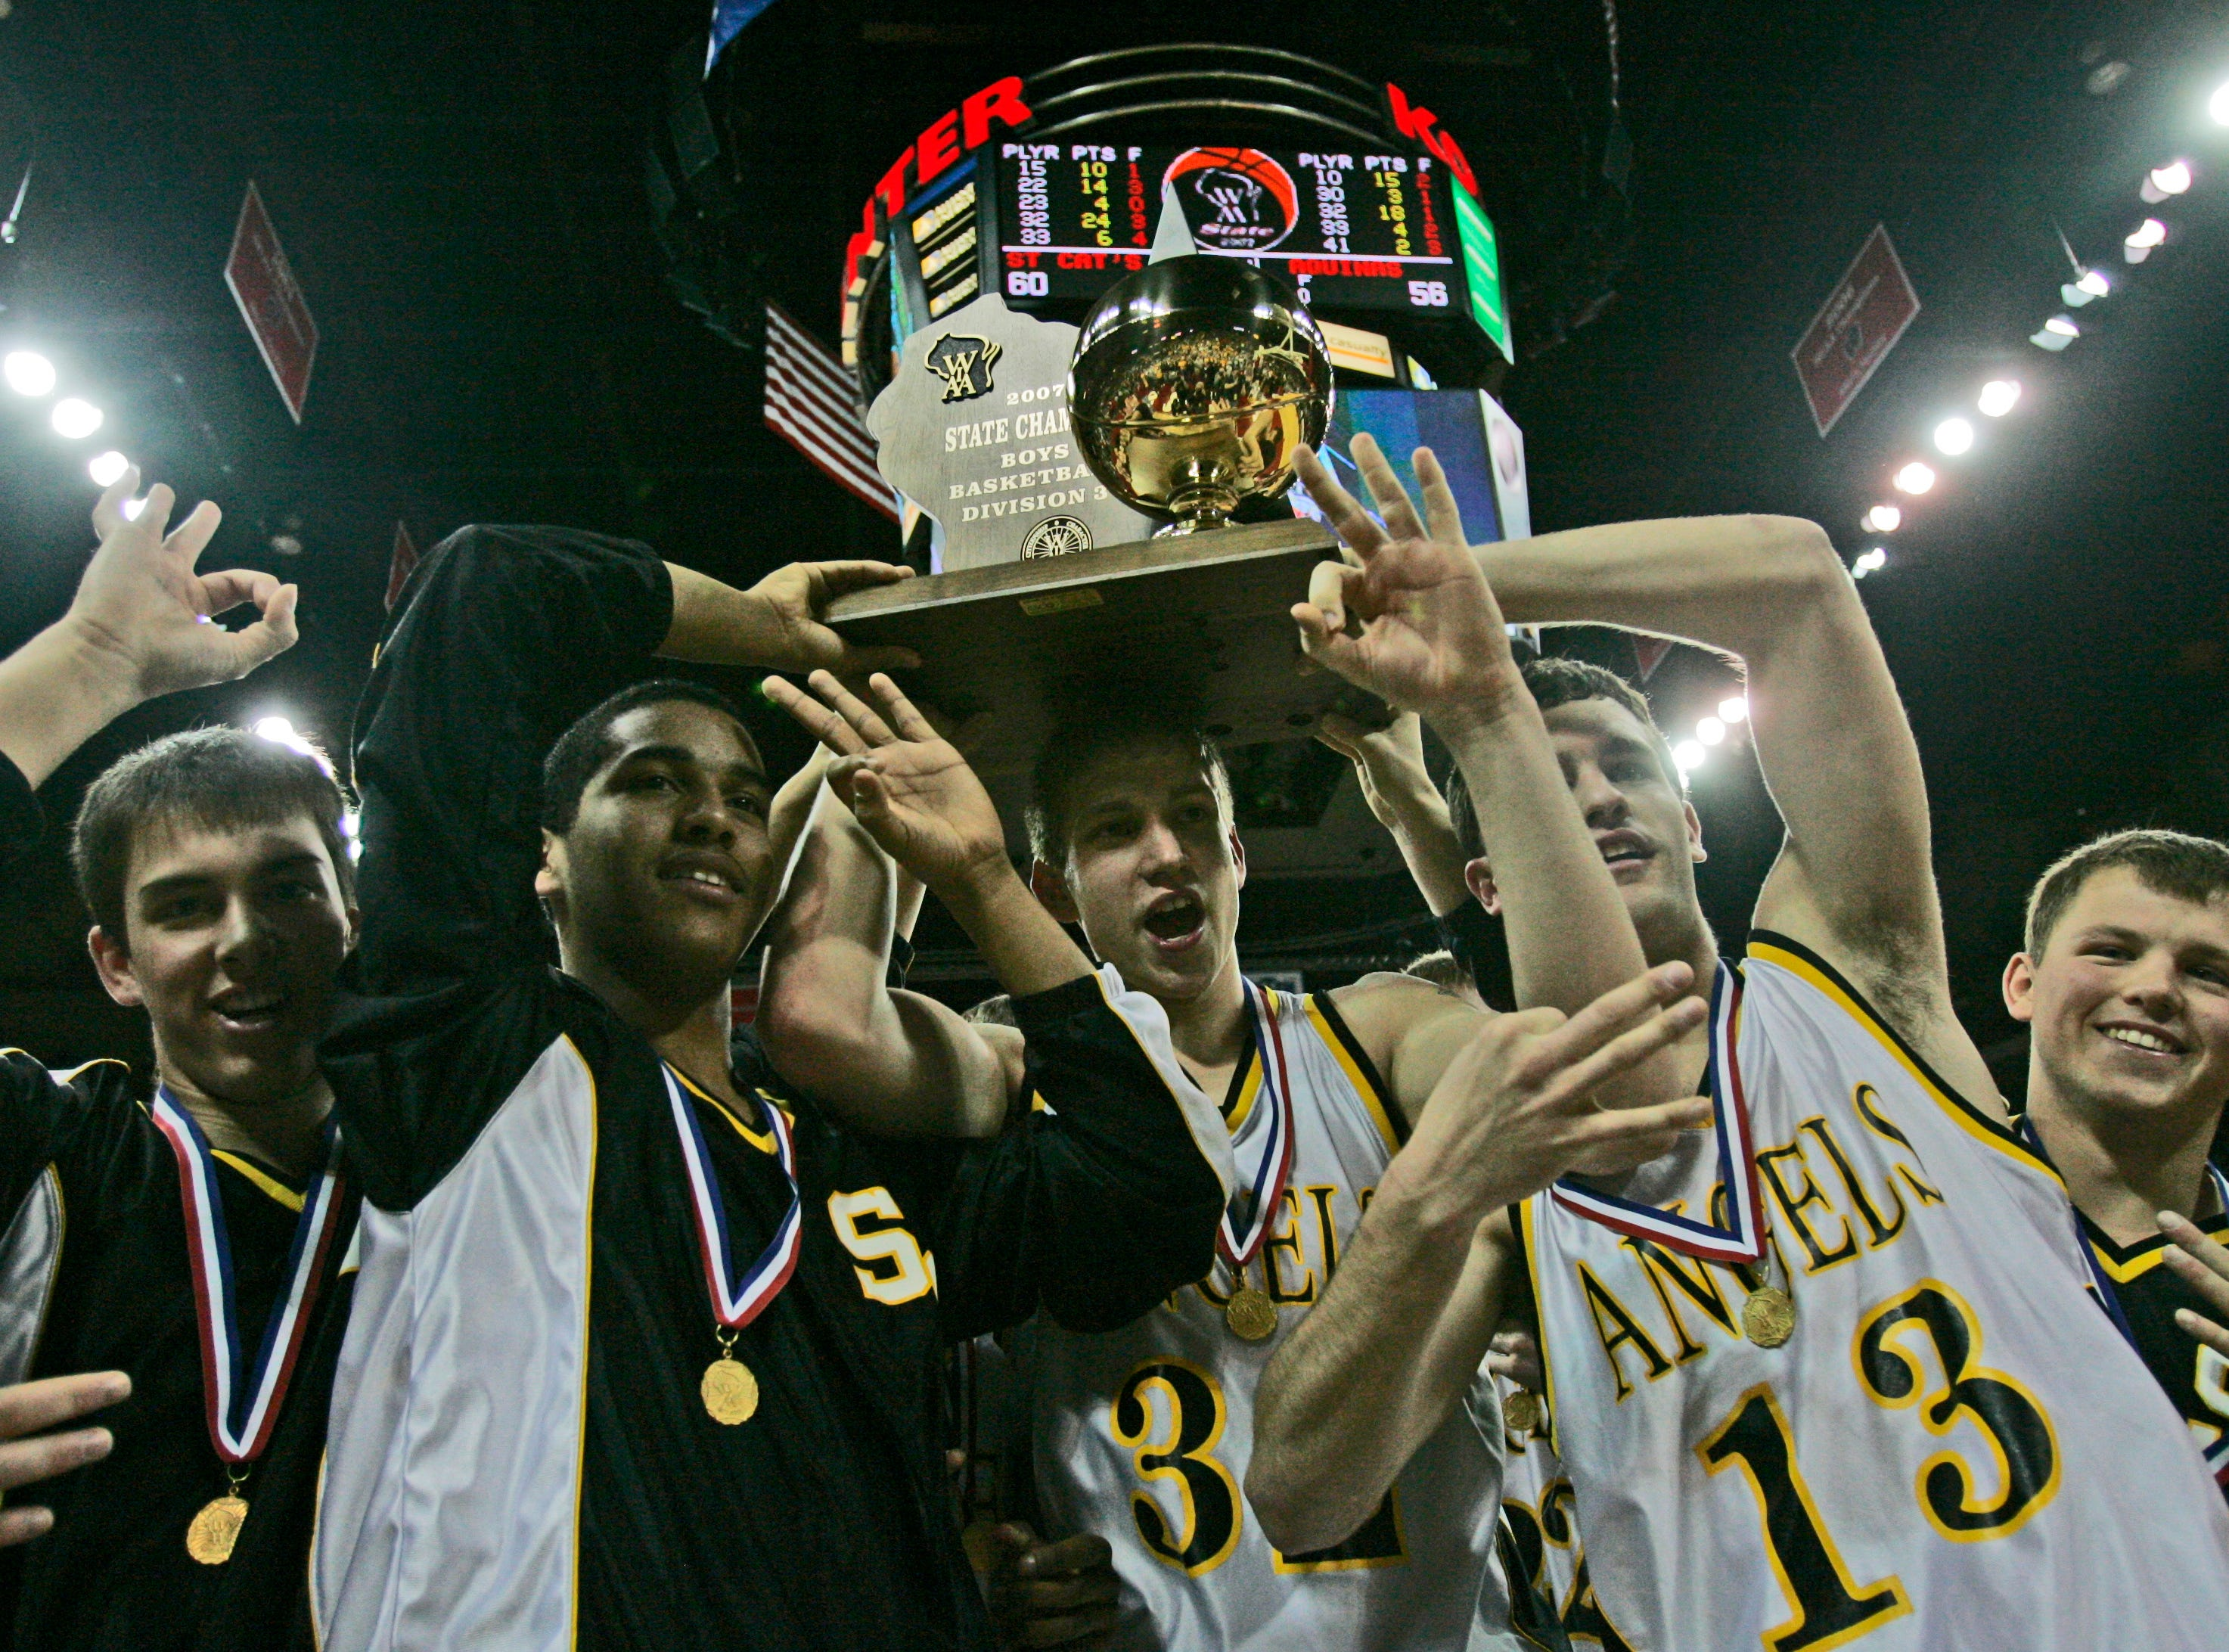 Racine St. Catherine's Angels' hold the championship trophy after their 60-56 win over Lacrosse Aquinas Bluegolds in the 2007 Division 3 WIAA State Basketball Tournament Finals, being held at the Kohl Center in Madison.